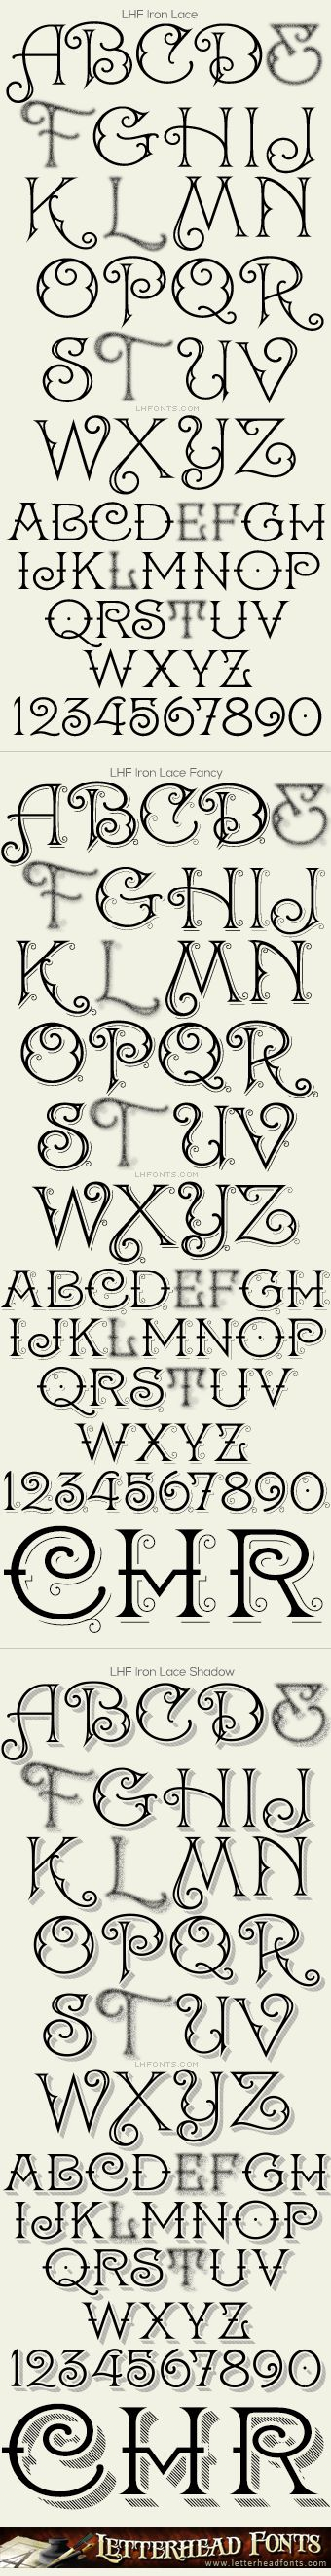 Letterhead Fonts / Iron Lace font set / Decorative Fonts